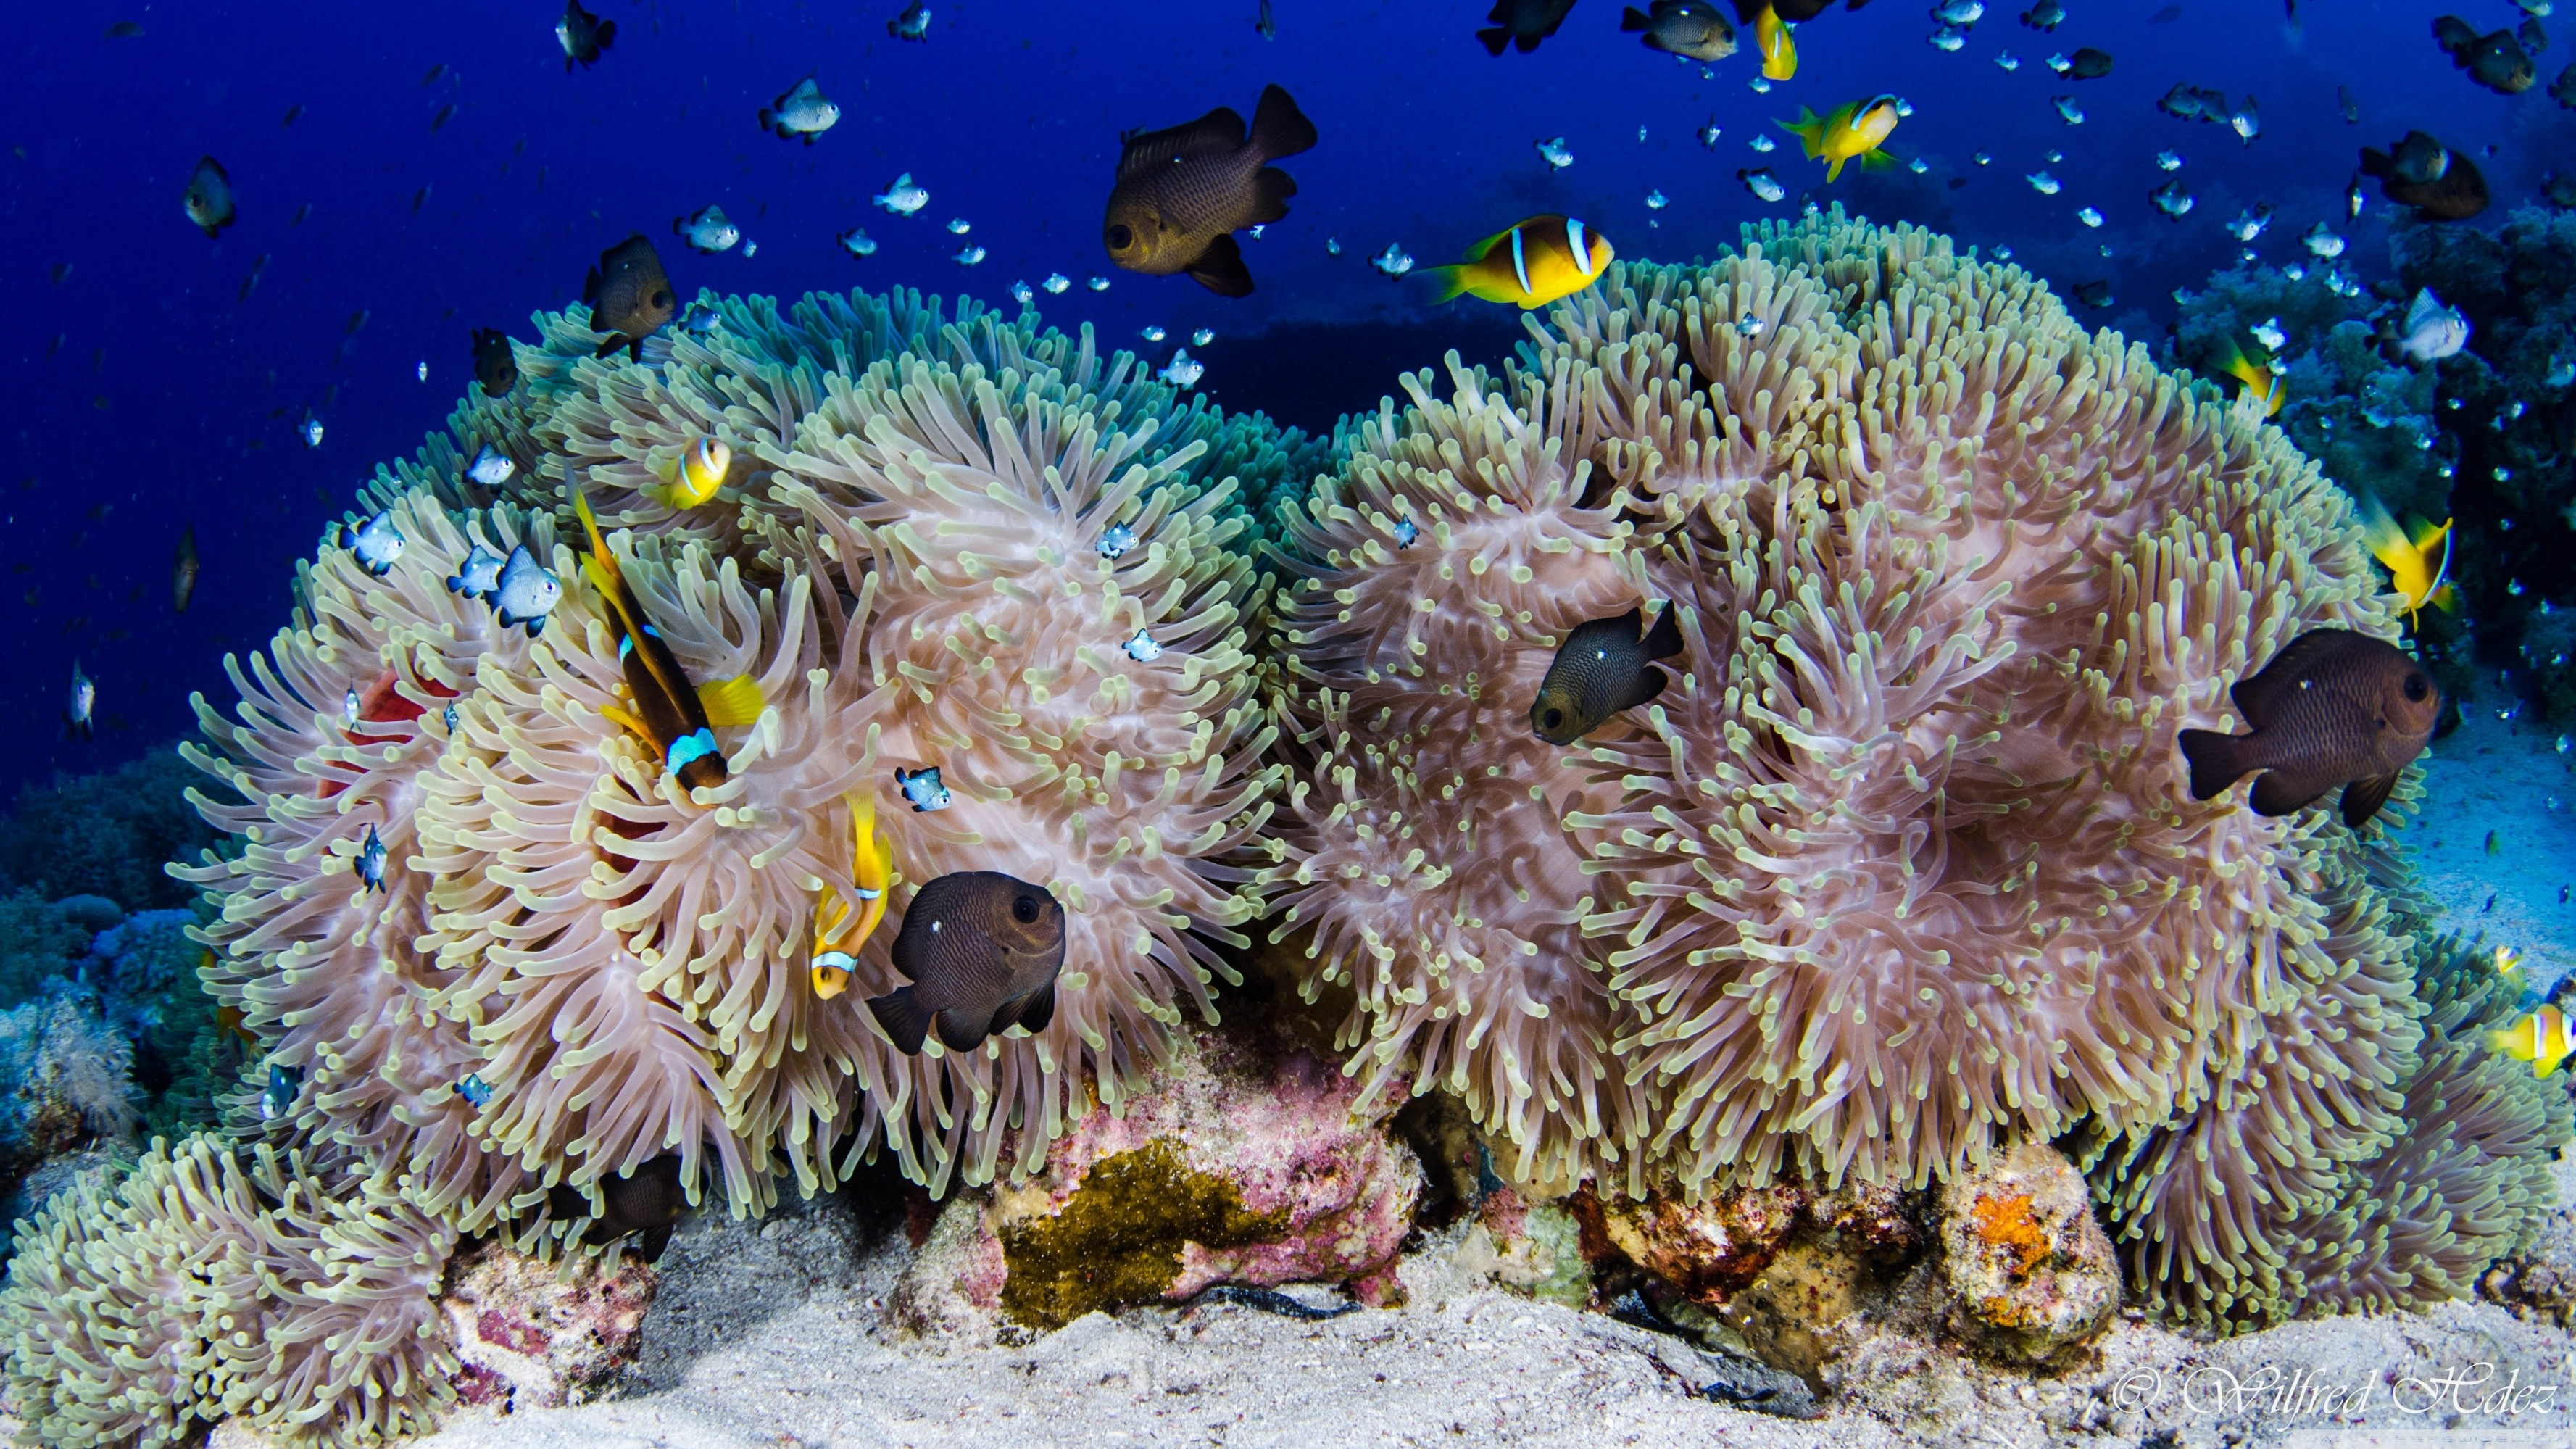 3554x1999 ... Scuba Diving Coral Reef HD HD Wallpaper  Download ...